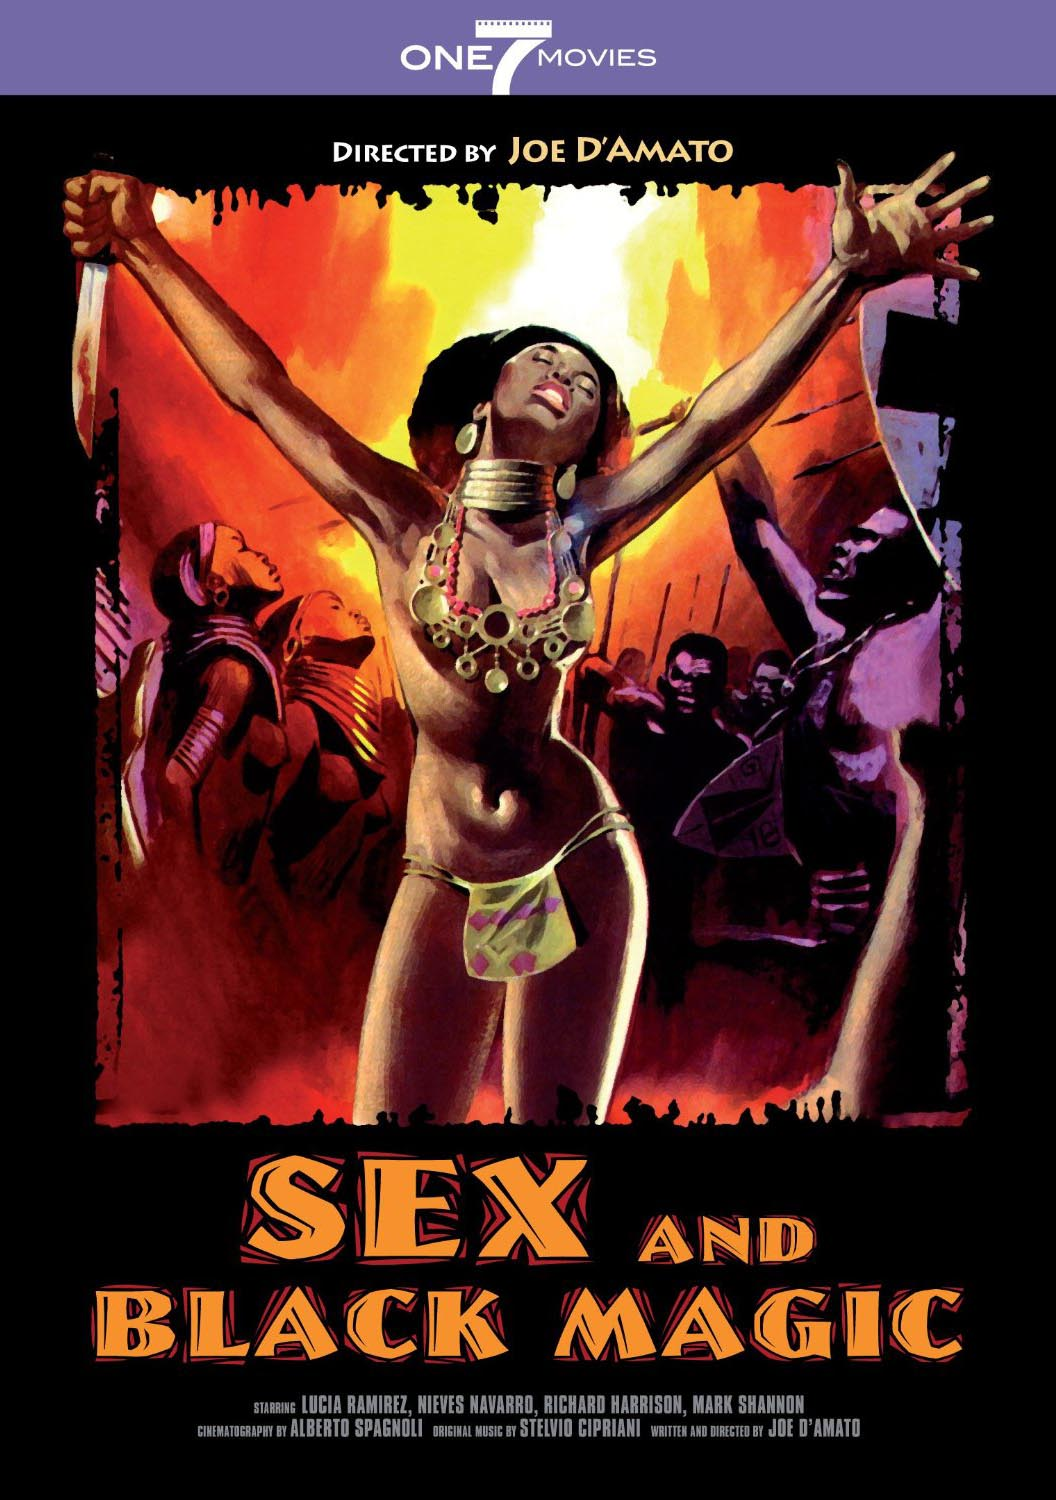 Sex and Black Magic - One 7 Movies/CAV Distributing Corporation